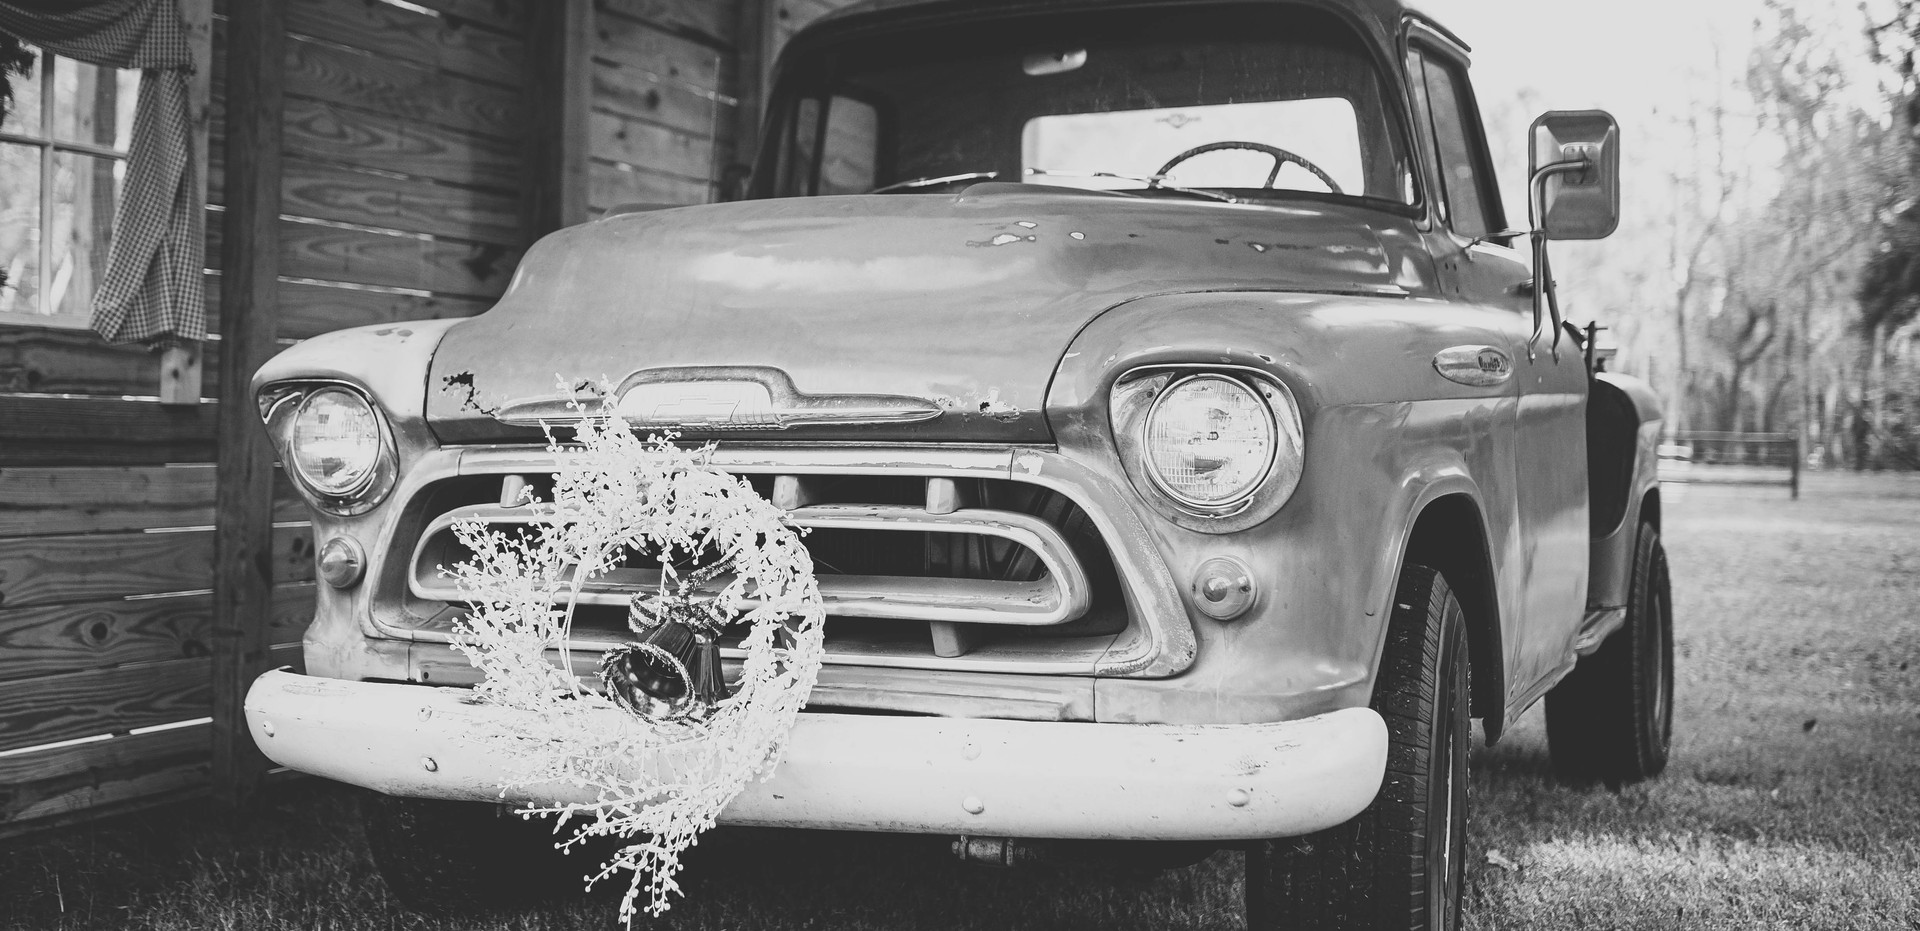 Our 1957 pickup truck